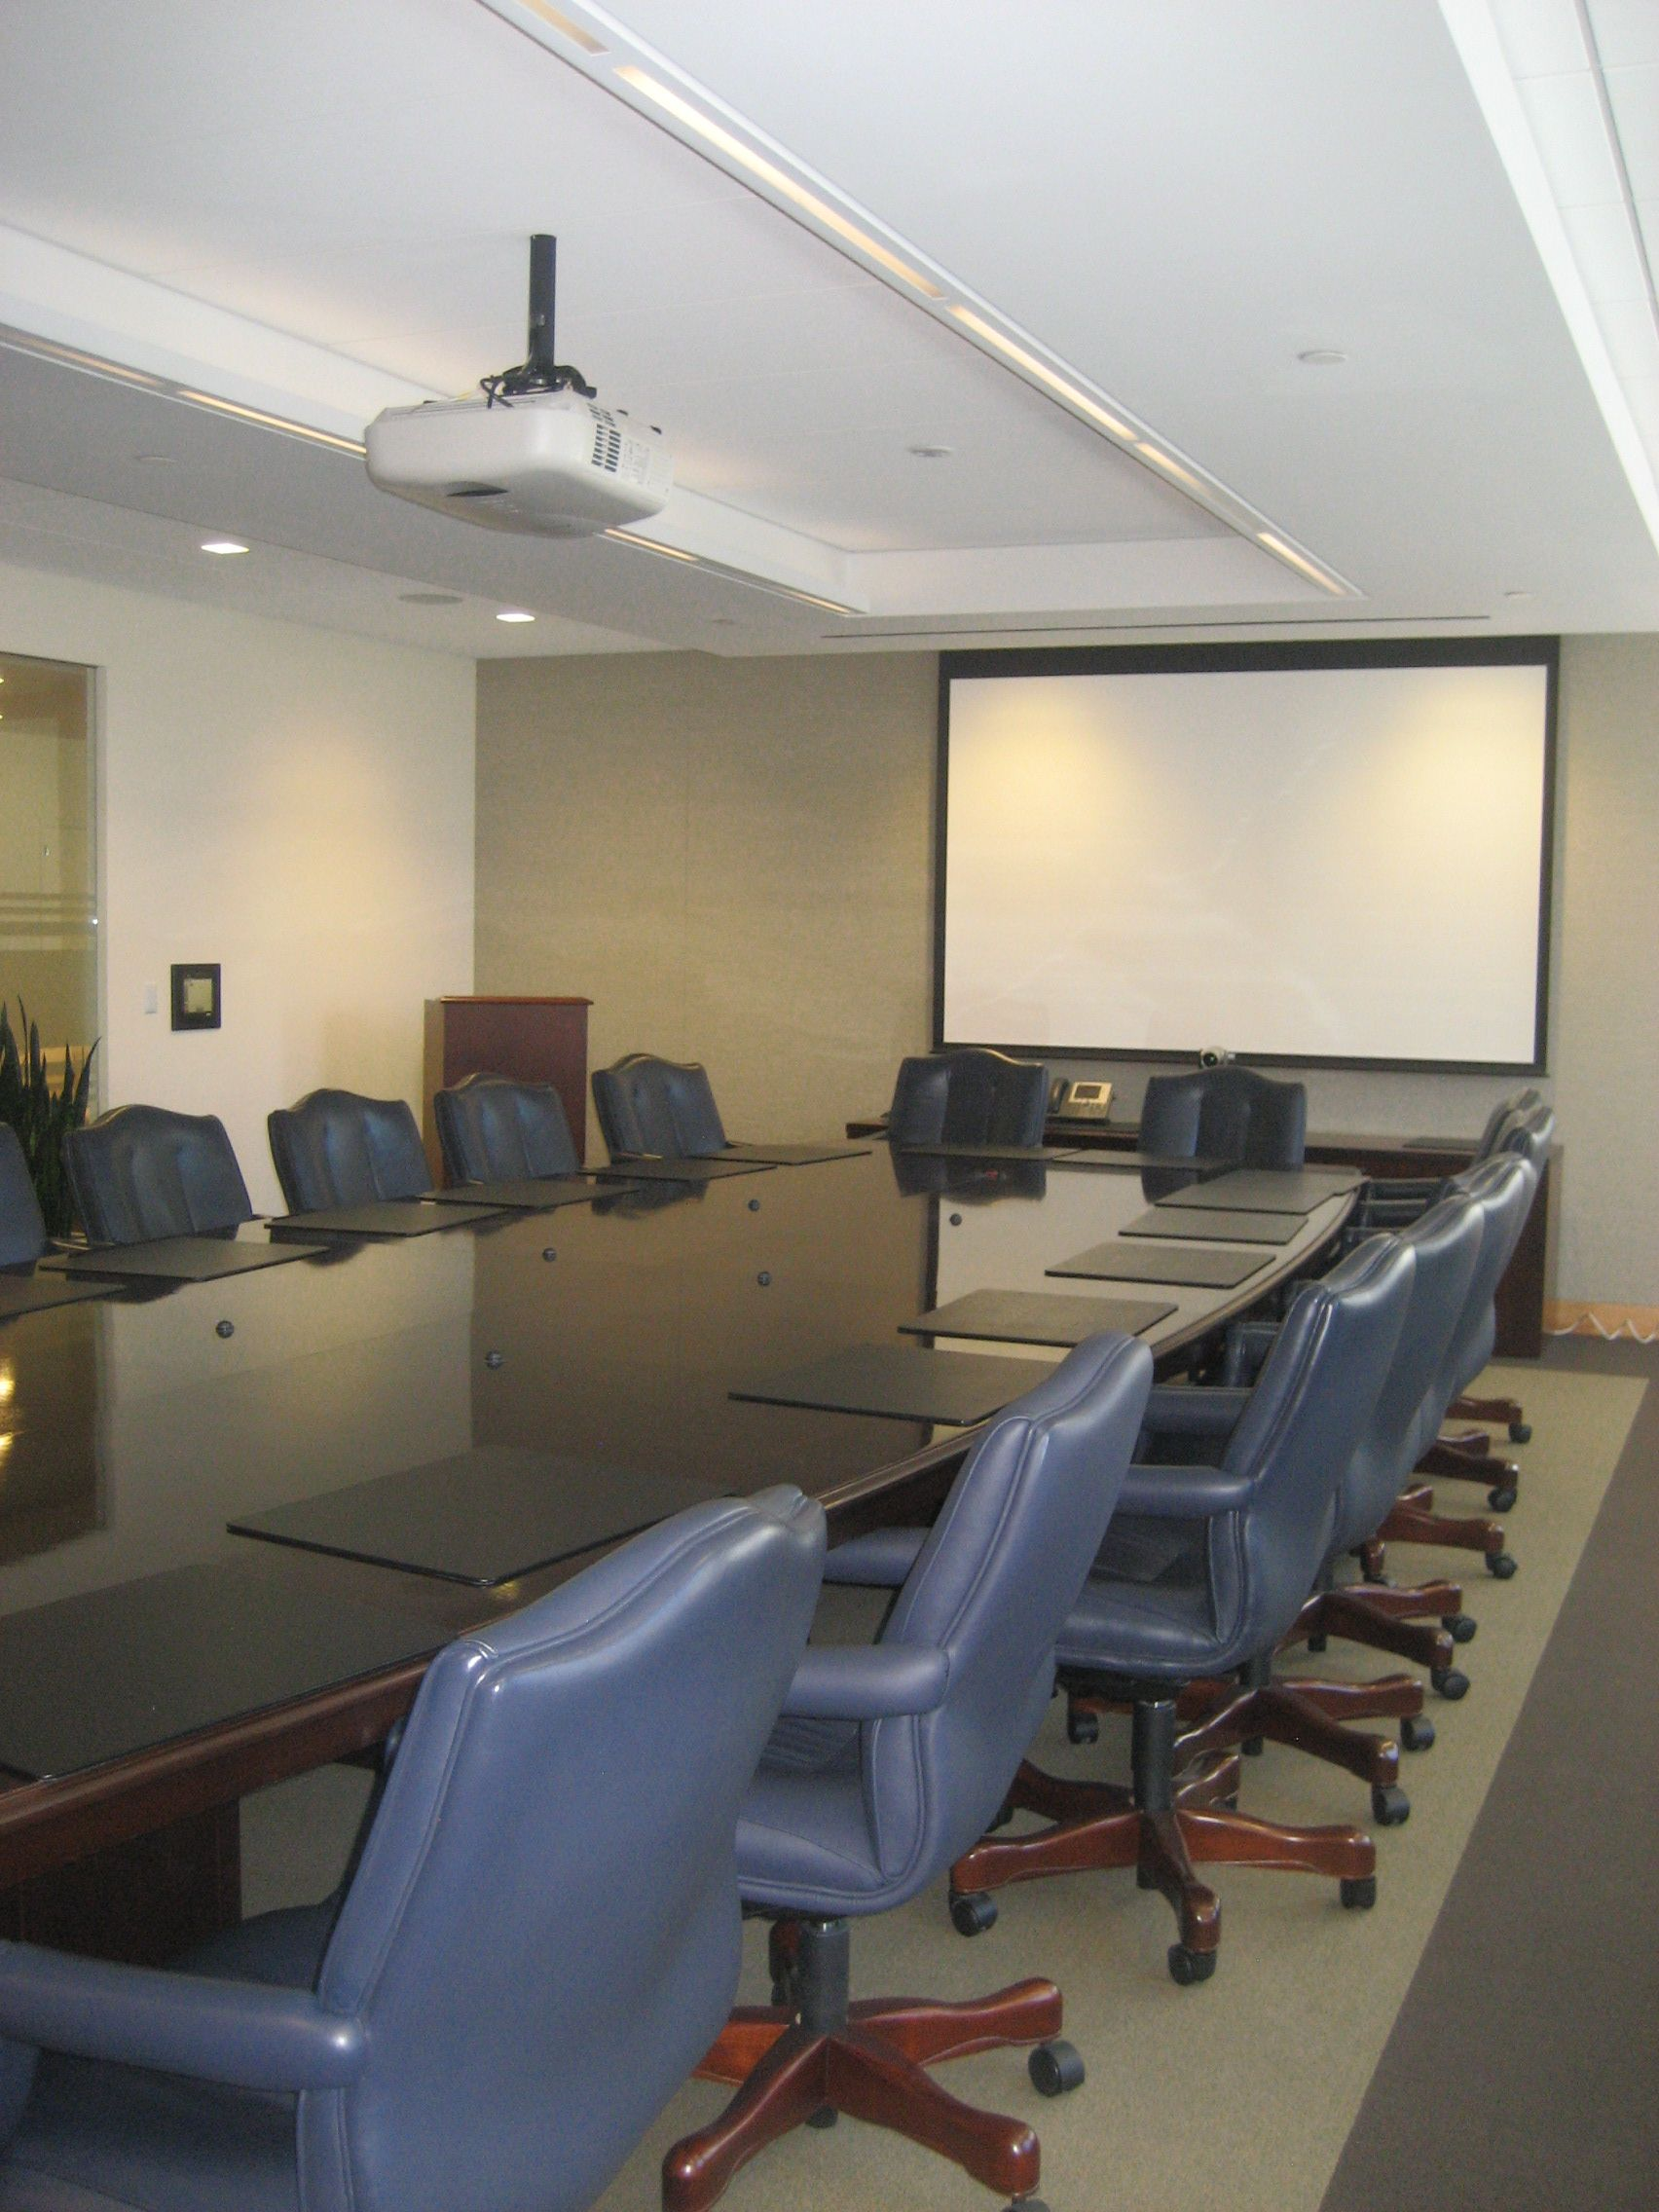 Projector Supercenter Llc Conference Room Installation Visit Us At Https